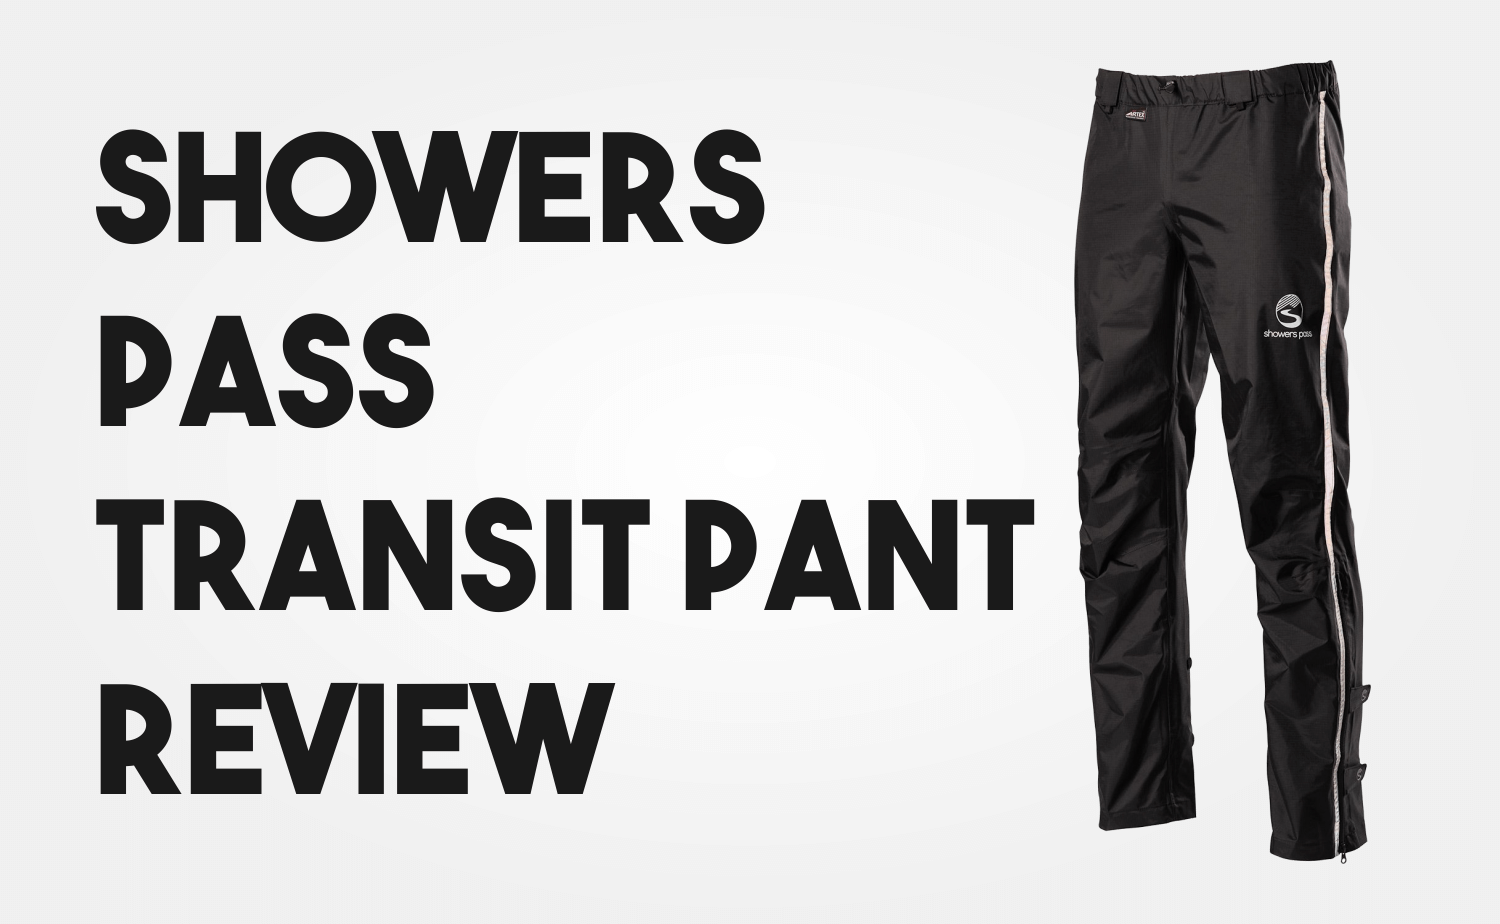 Waterproof and Breathable Showers Pass Storm Pant